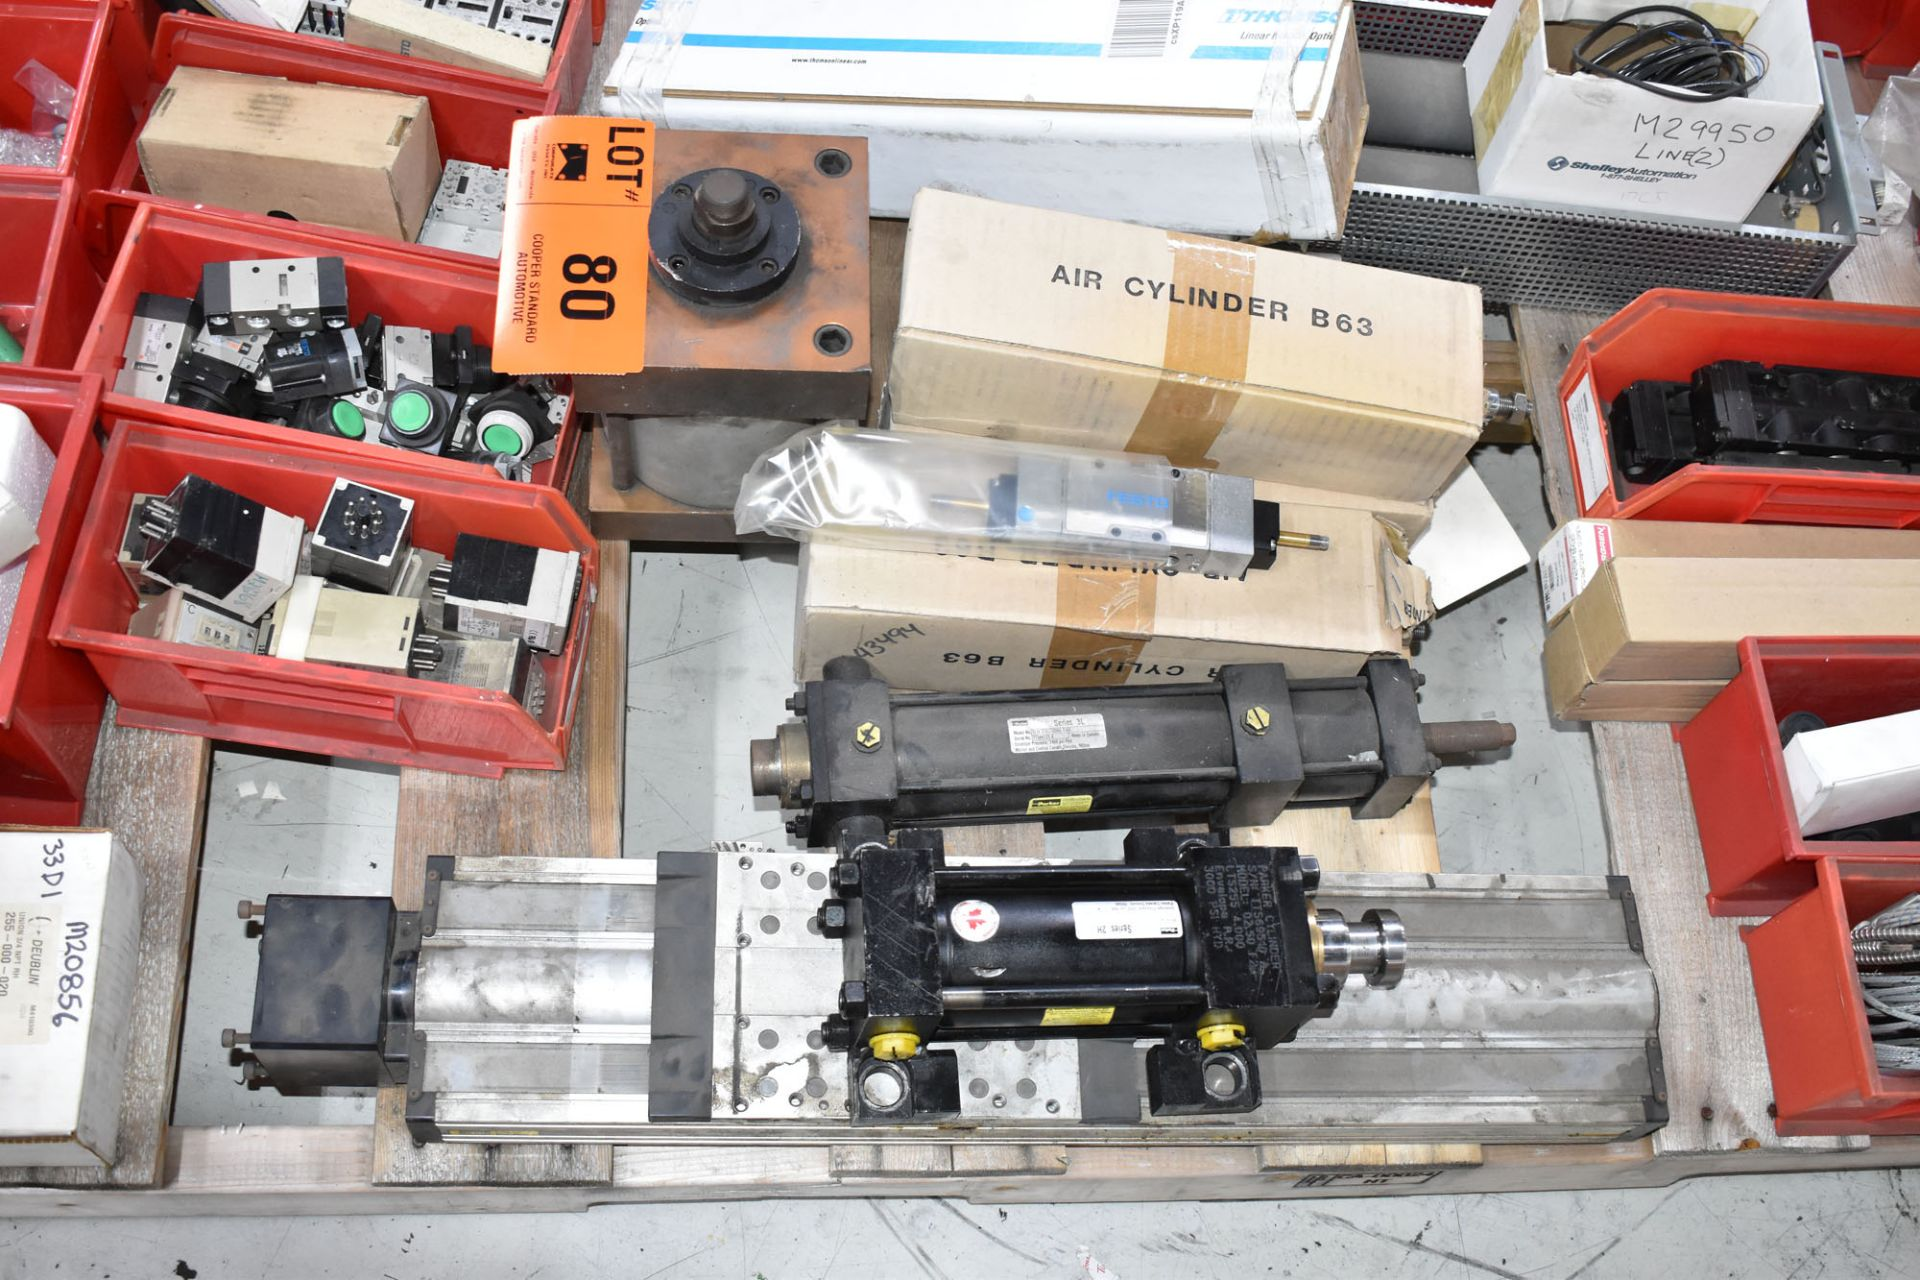 LOT/ PALLET WITH CONTENTS CONSISTING OF BEARINGS, CYLINDERS, AND EXTRUDER LINE COMPONENTS [RIGGING - Image 3 of 5